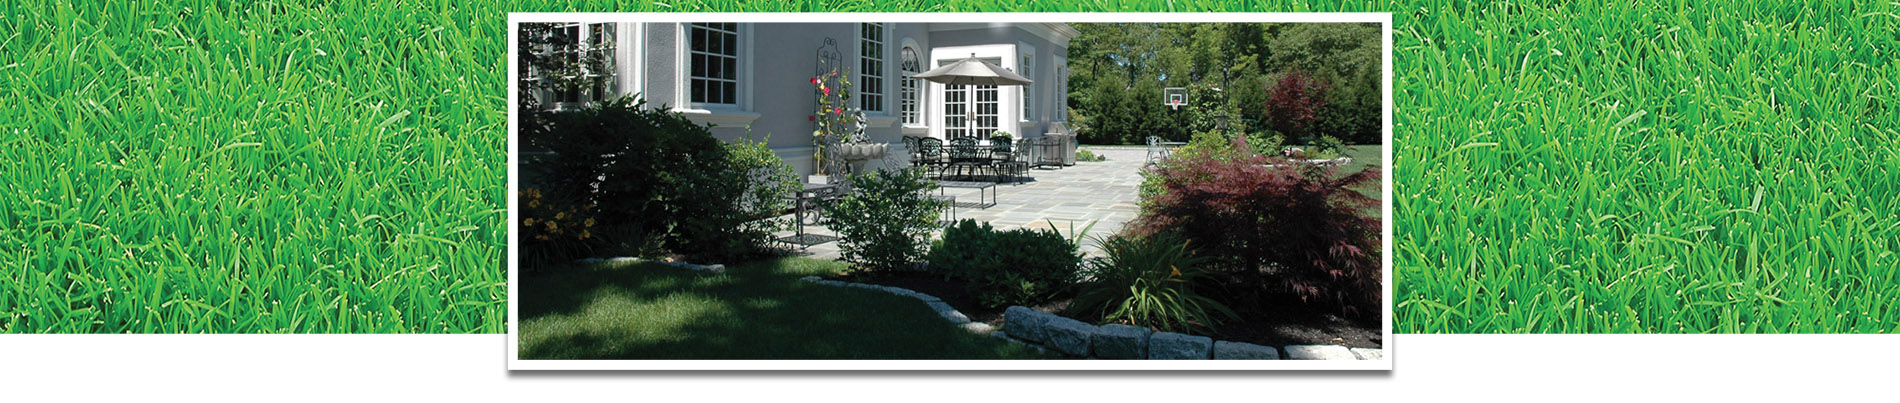 landscaping contractor monmouth county nj manny 39 s landscaping